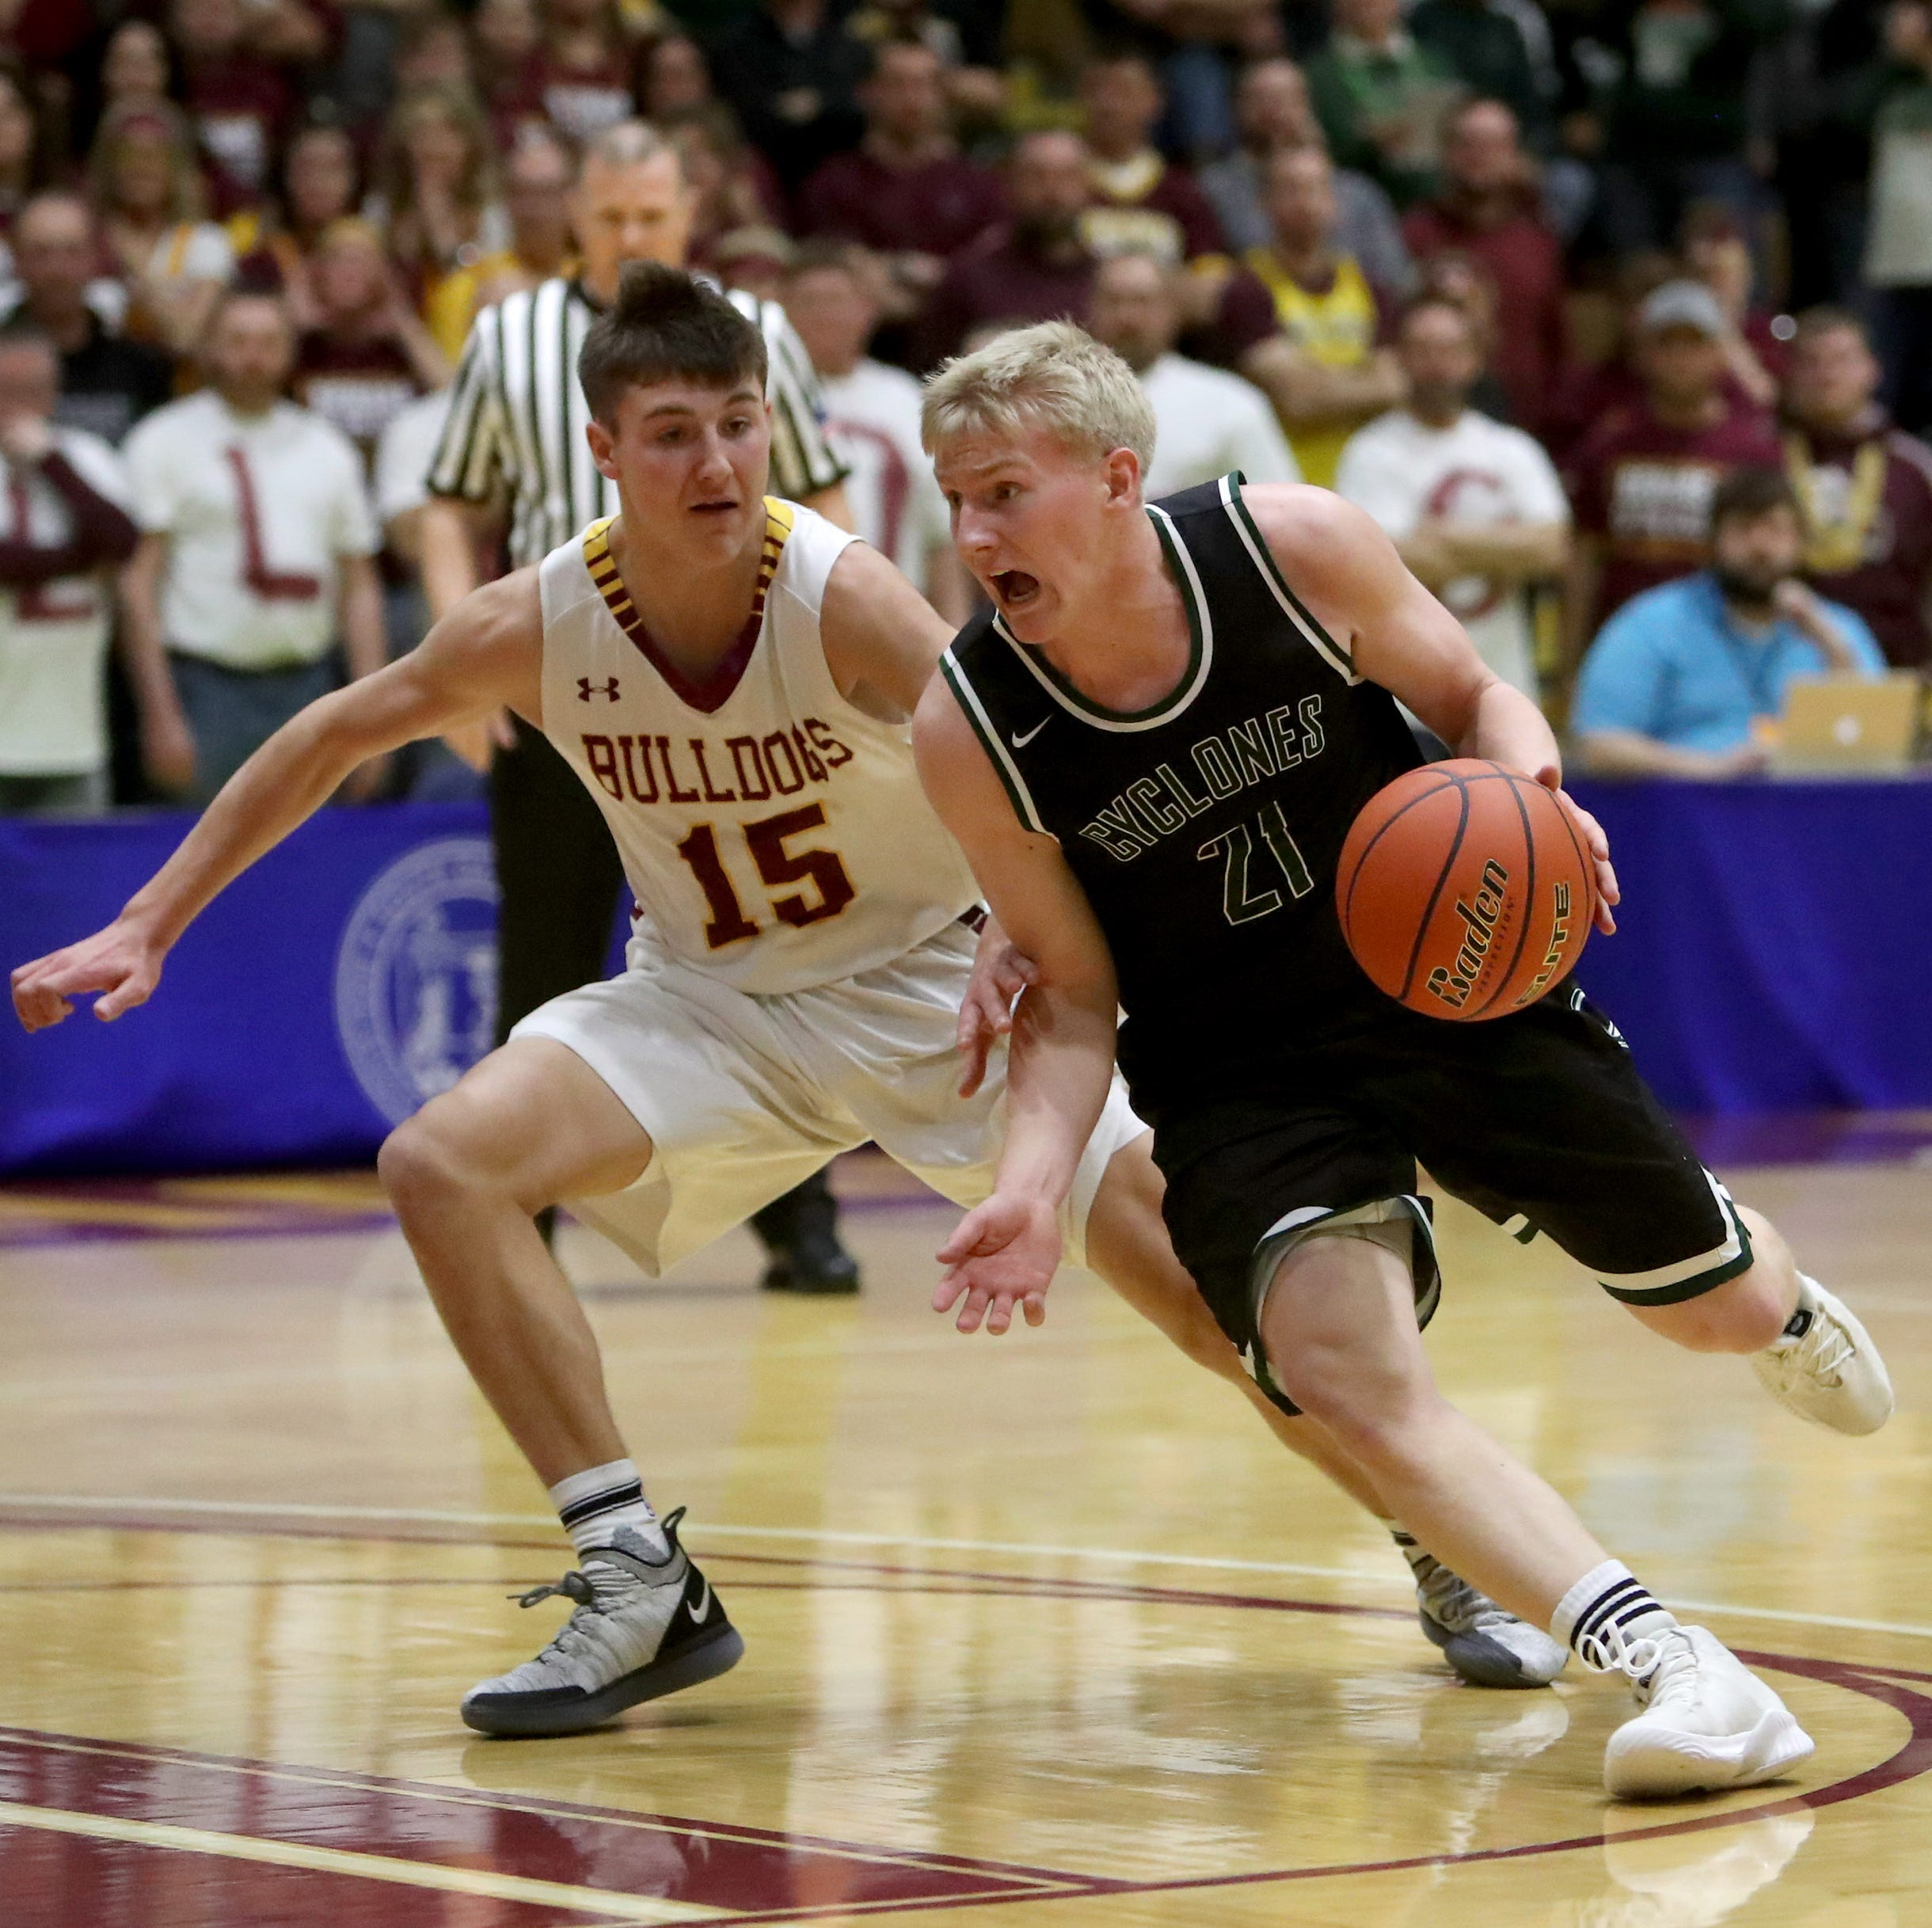 Jacob Prouty scores 35 points to lead Clark/Willow Lake to Class B title